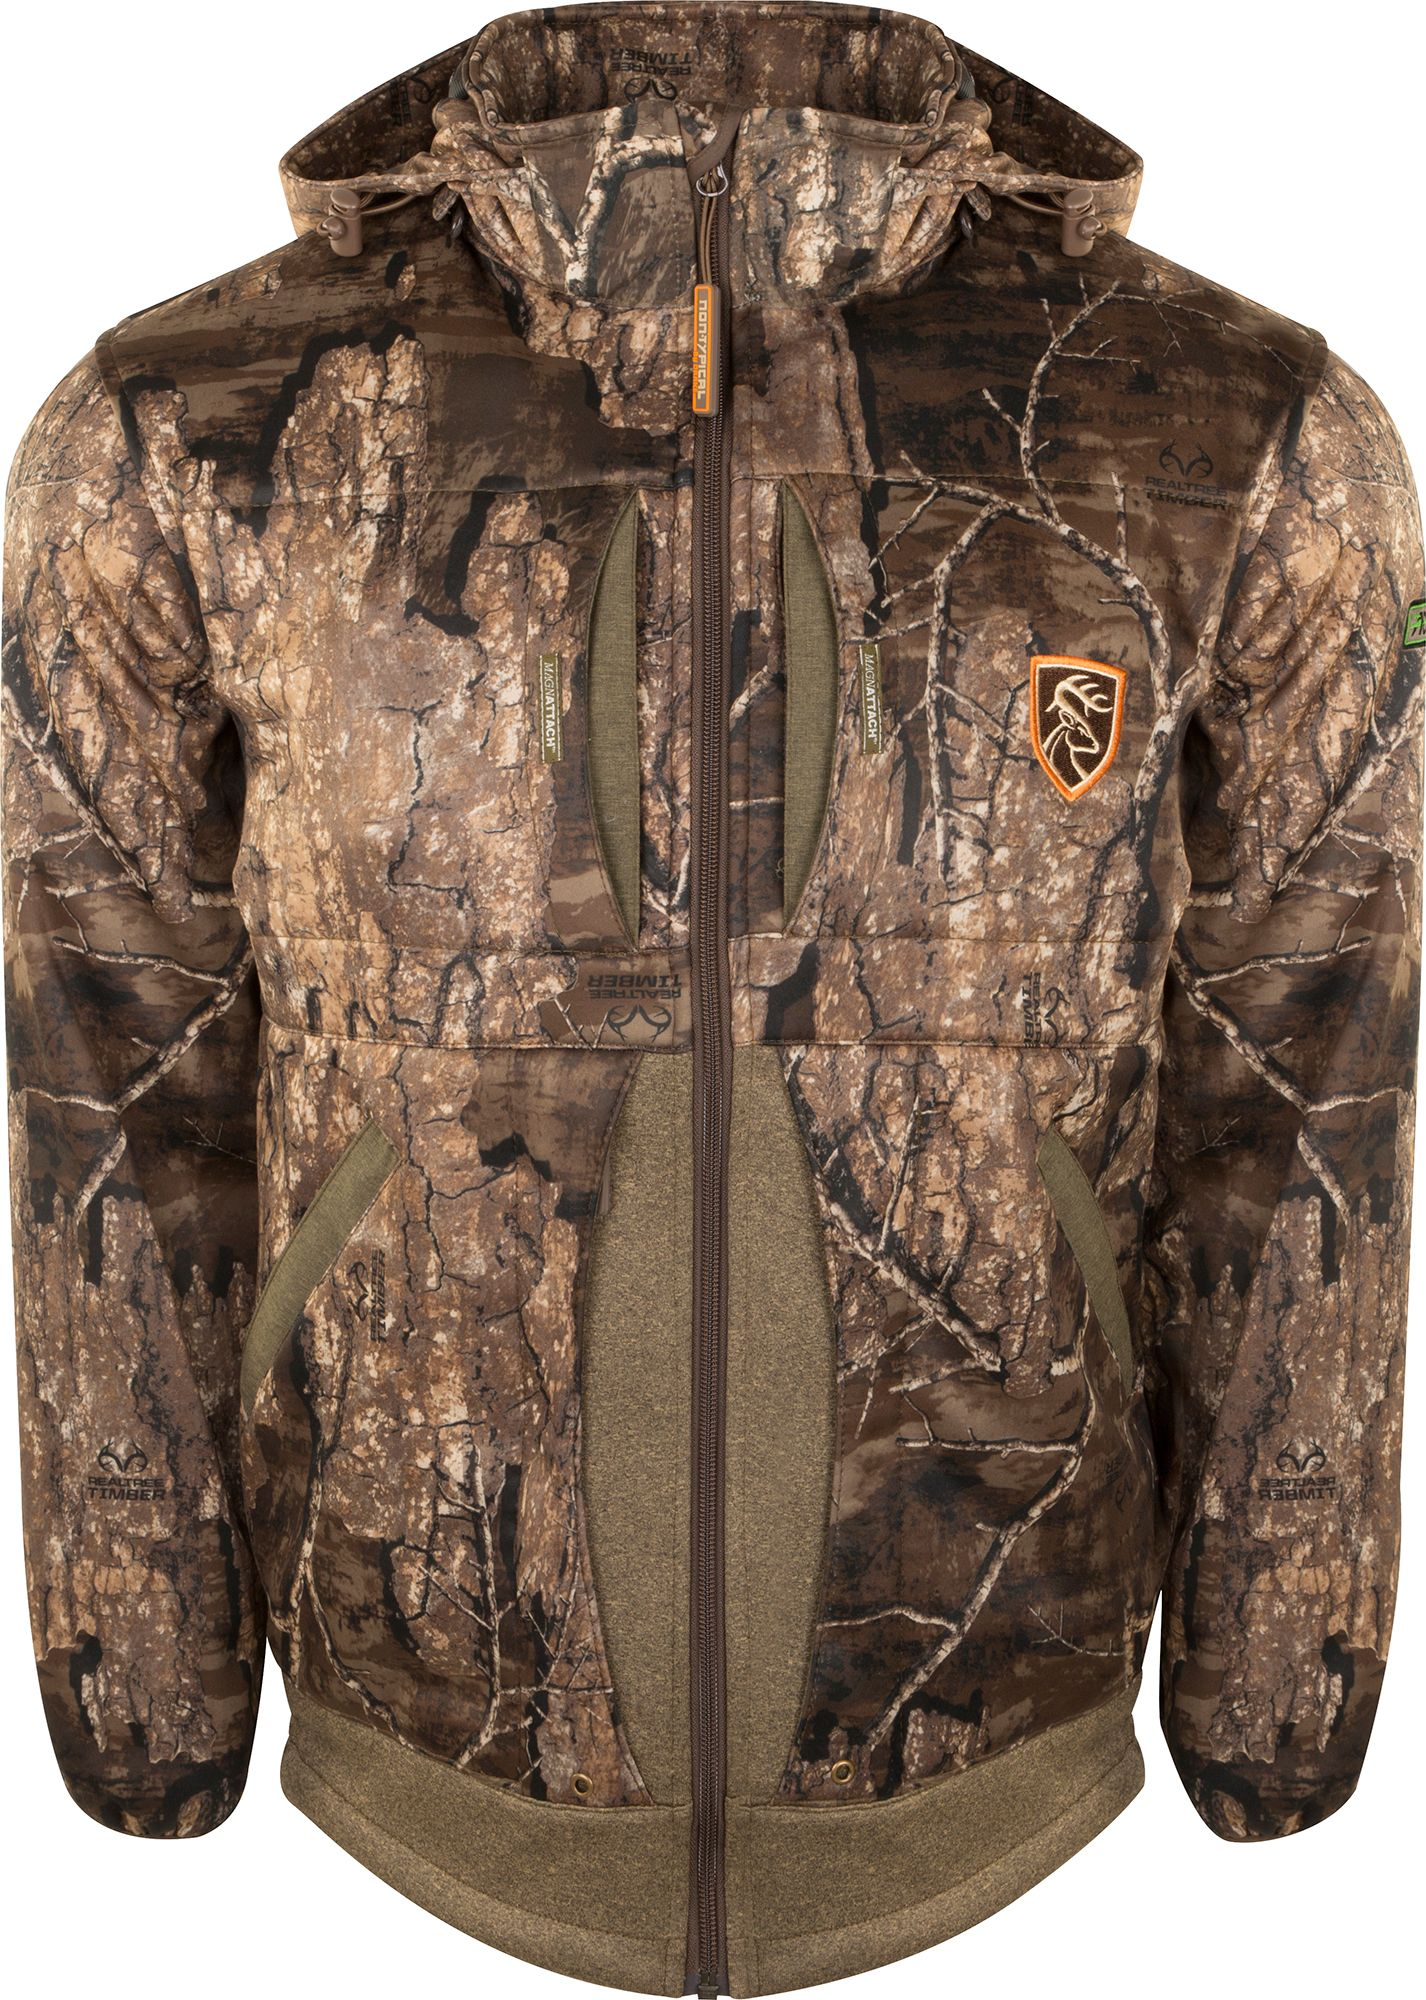 Drake Waterfowl Men's Non-Typical Stand Hunter's Endurance Jacket with Agion Active XL, Size: XXL